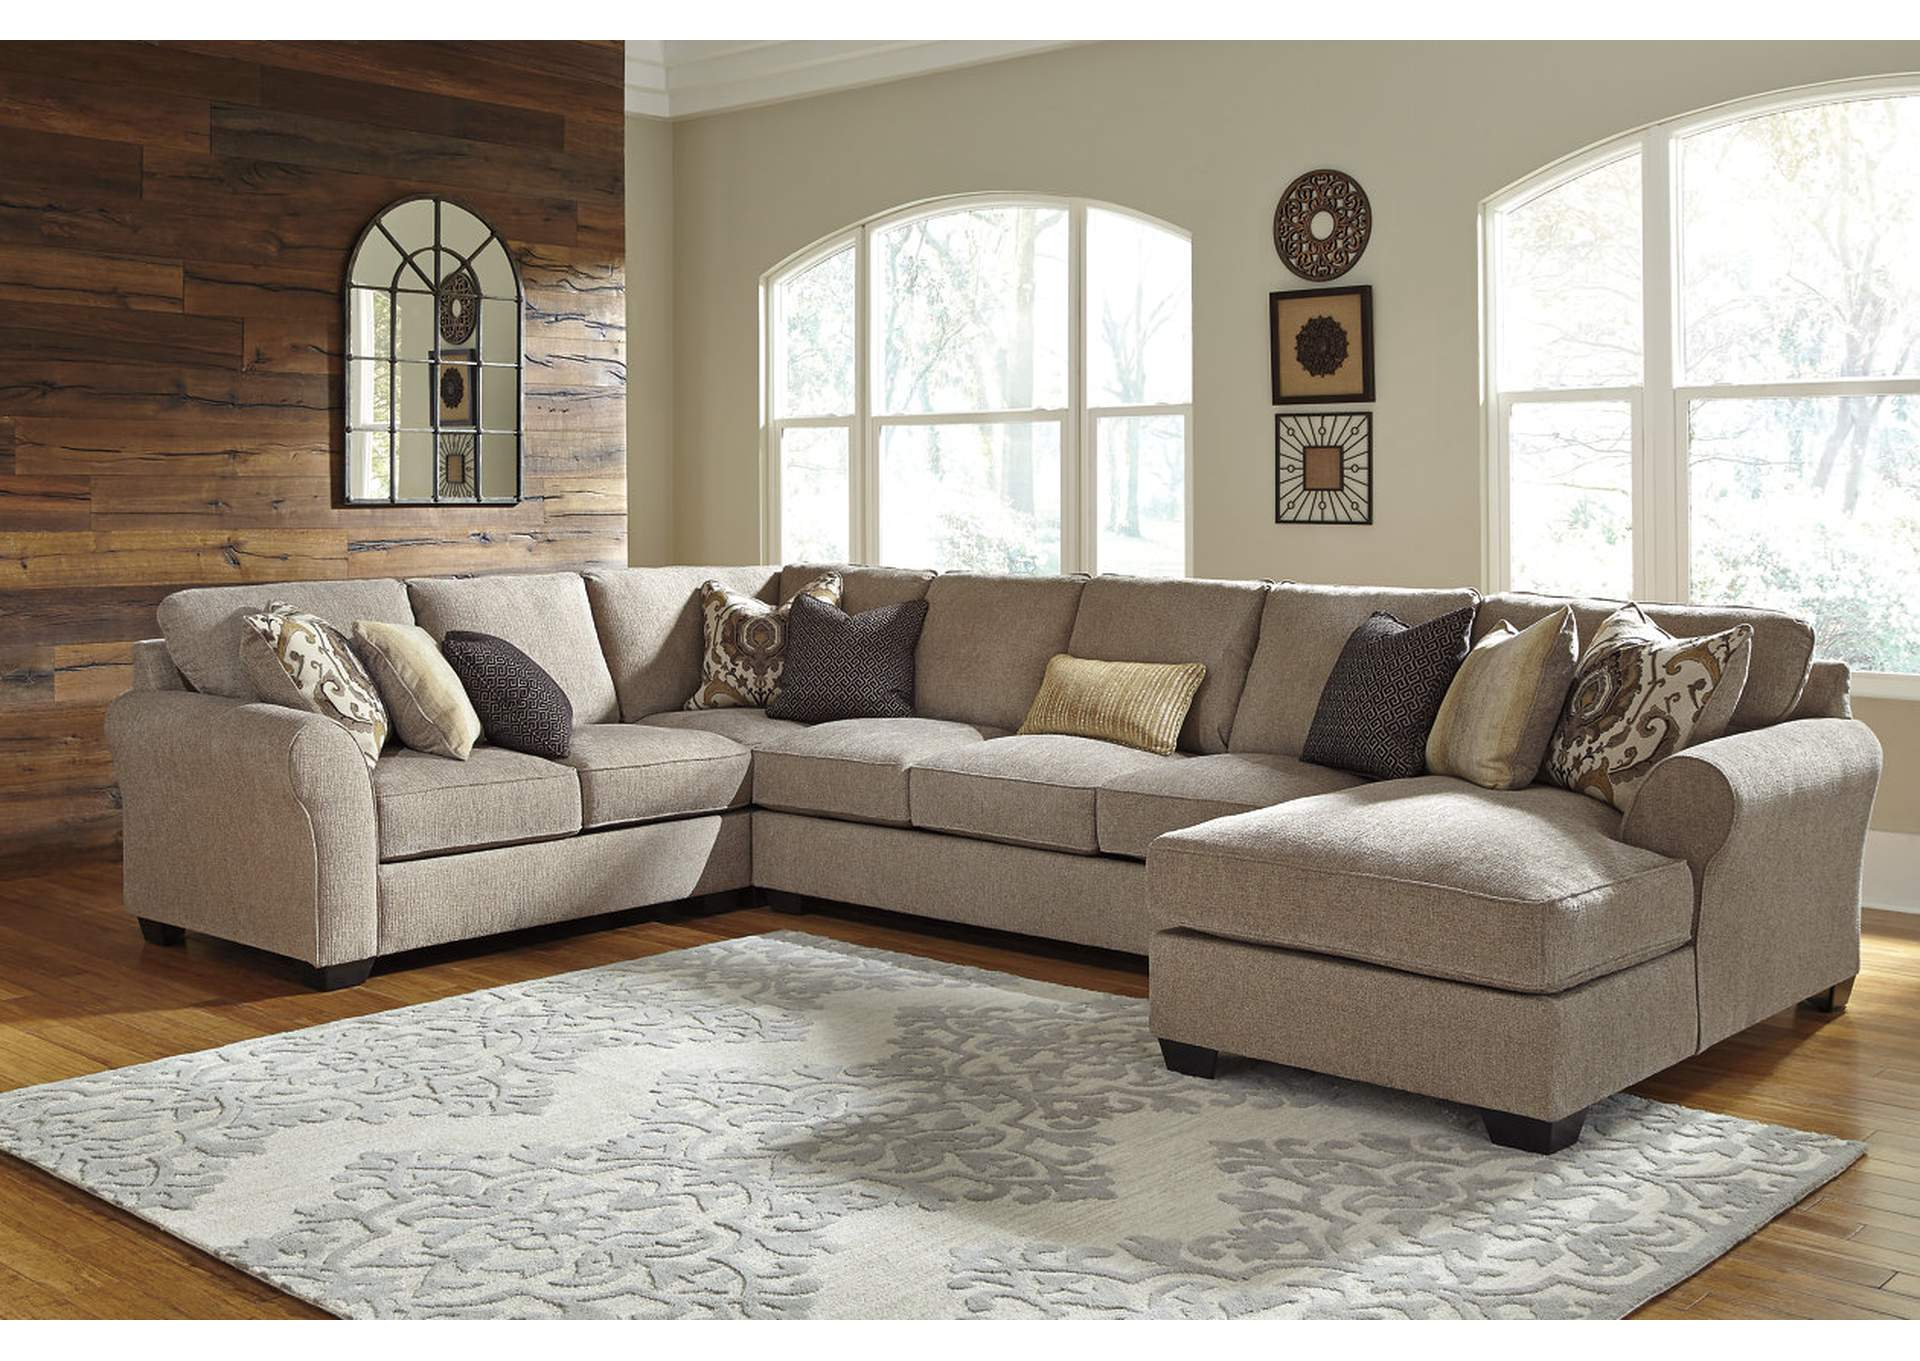 Pantomine Driftwood Sectional w/Right Facing Corner Chaise,ABF Benchcraft